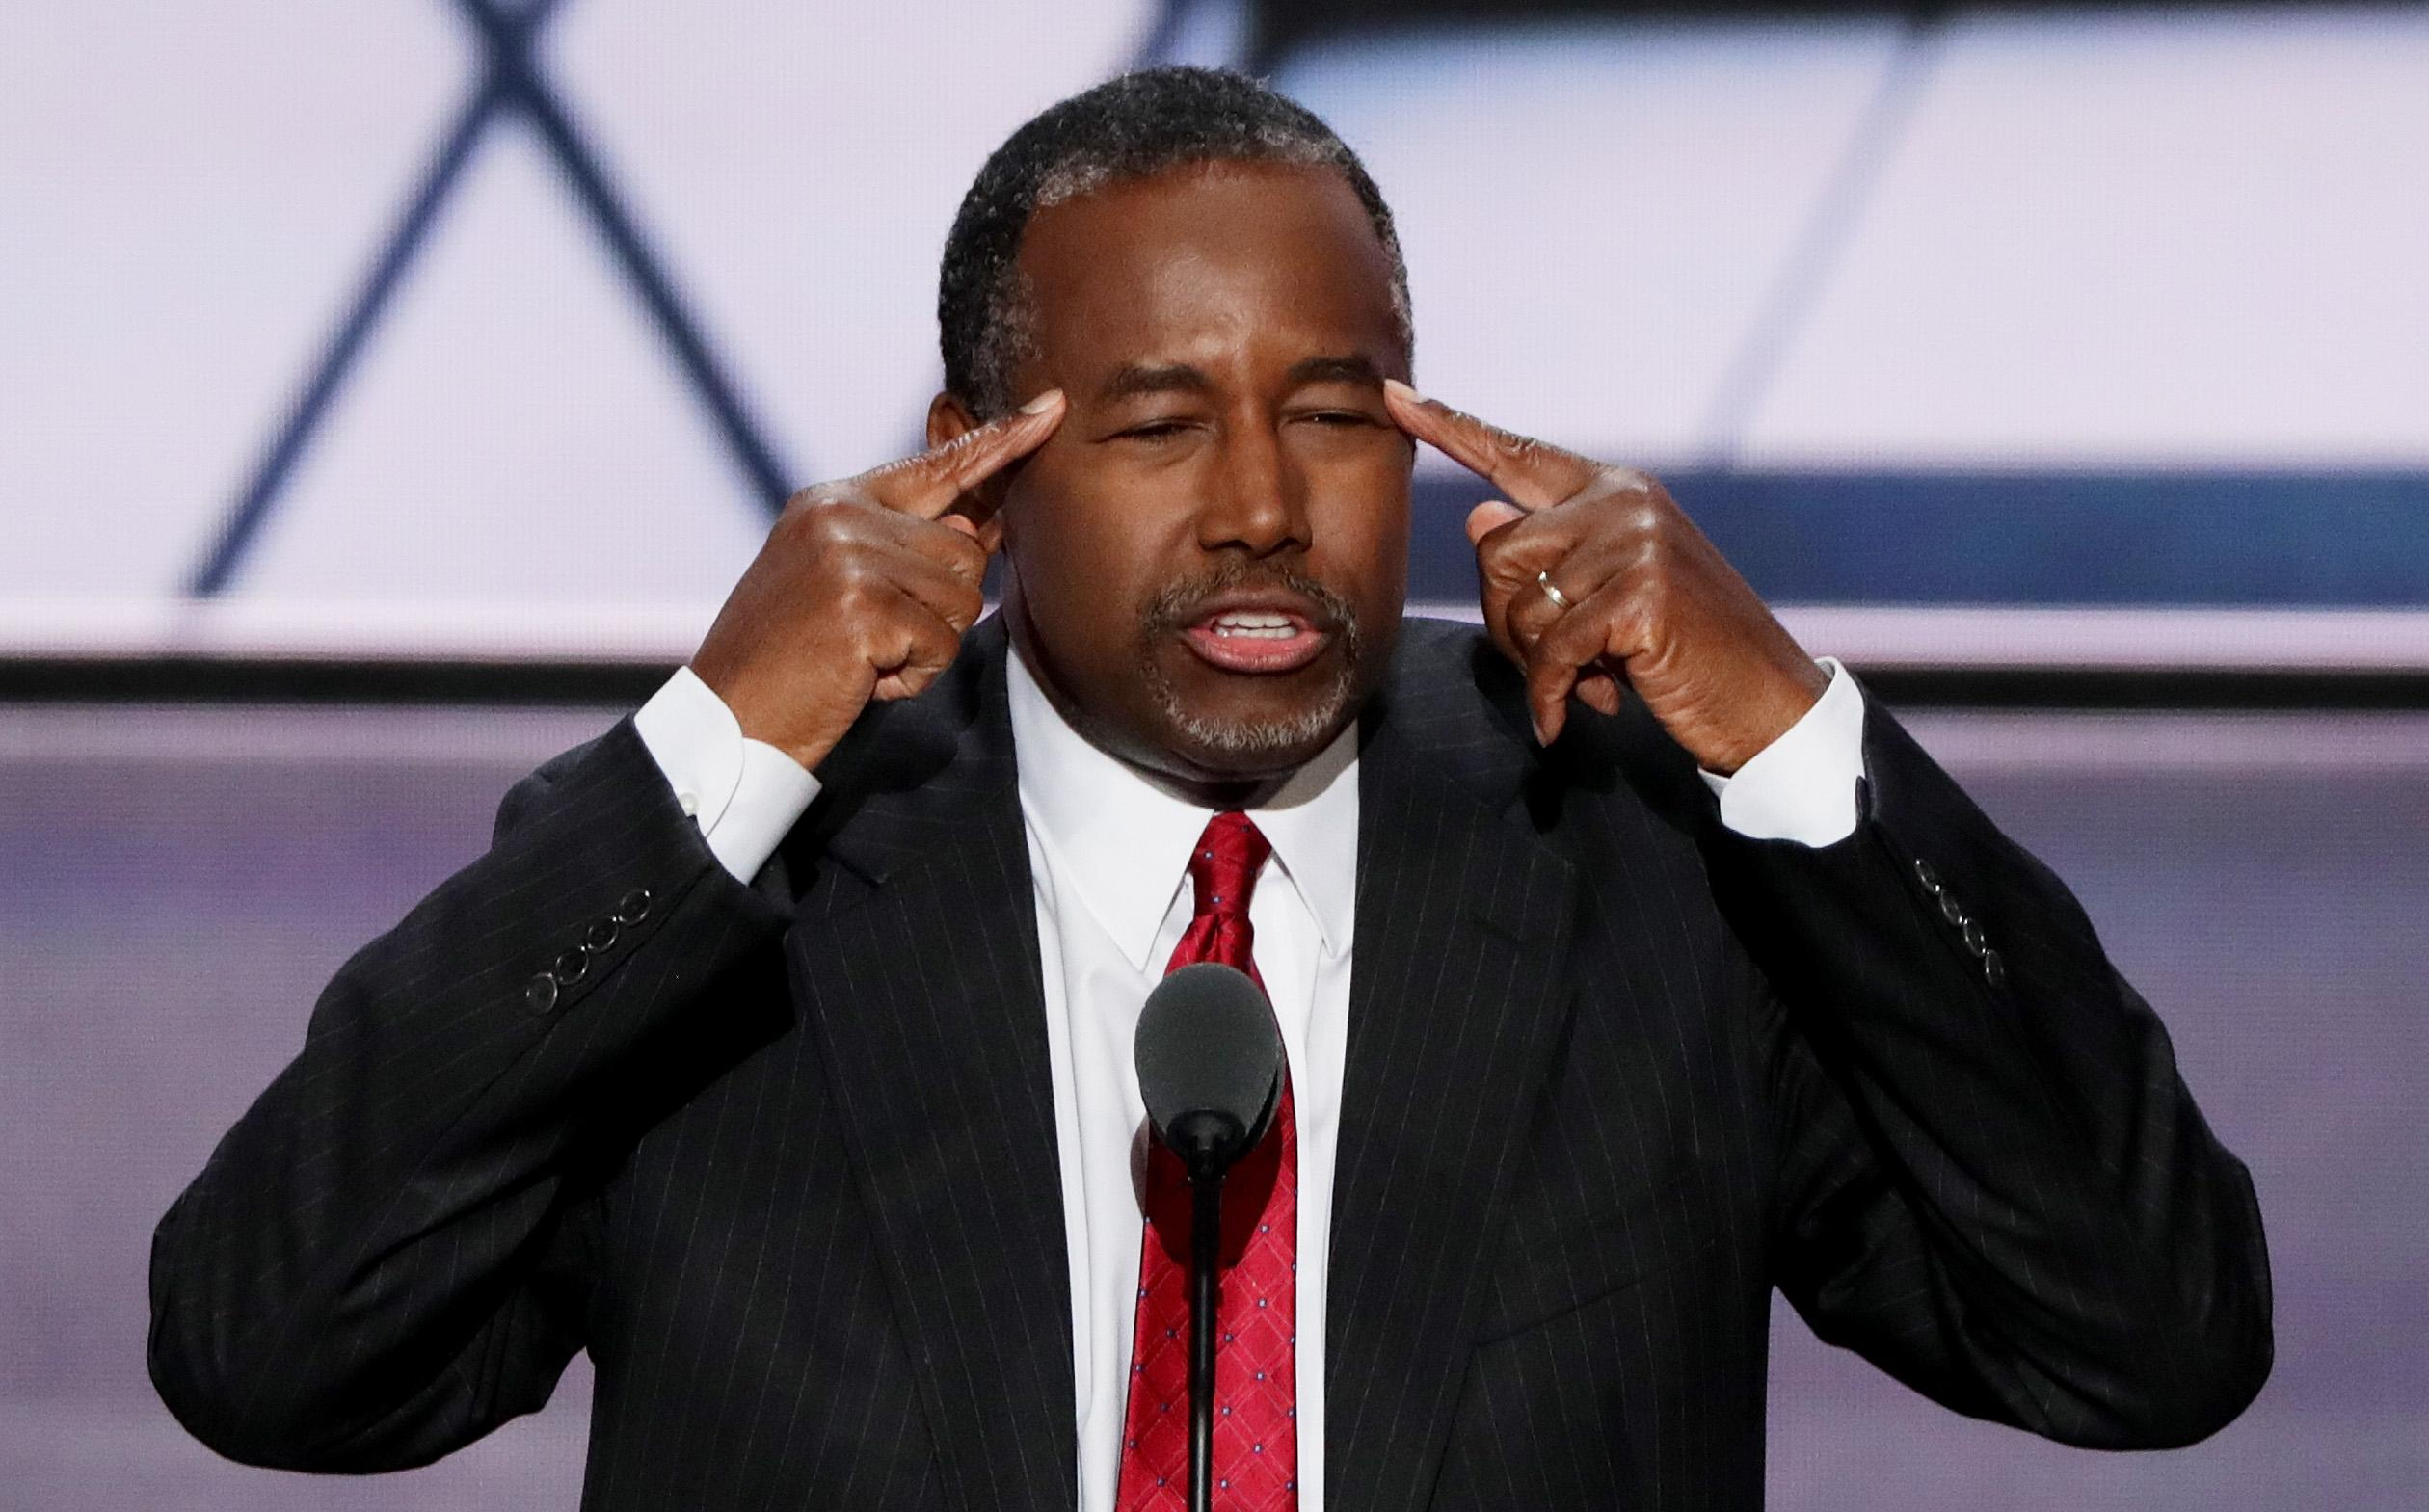 HUD Official Resigns From 'Do-Nothing' Job Over Ben Carson's Redecoration Spending